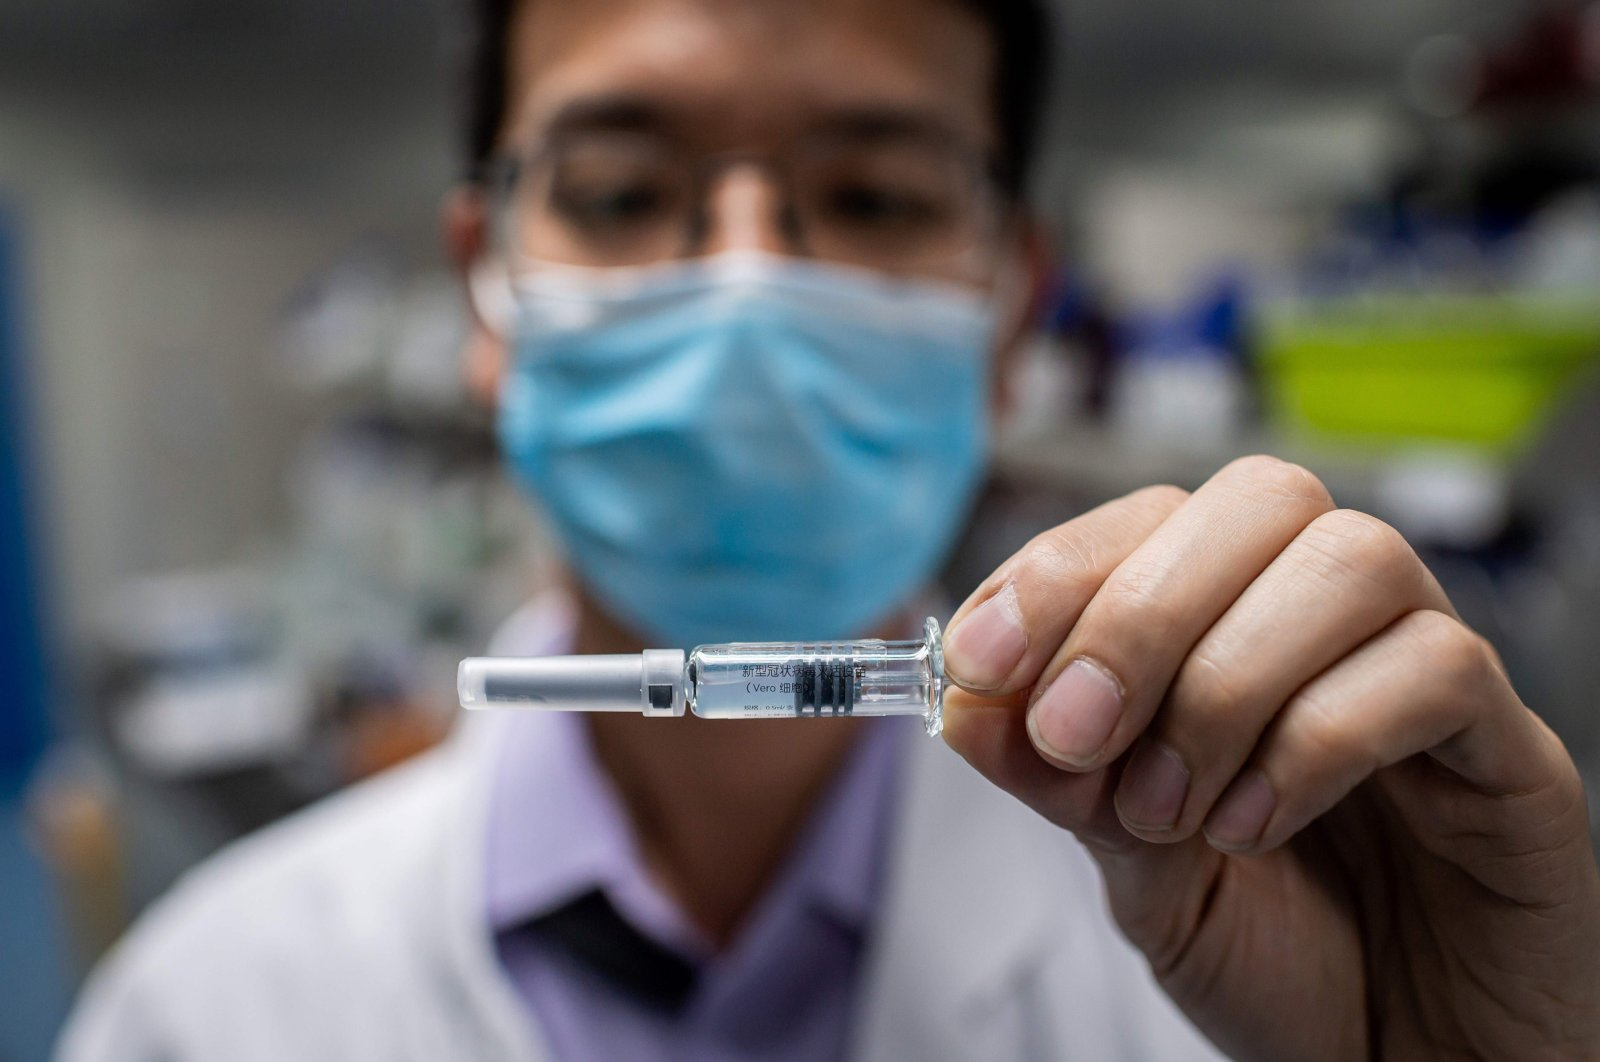 In this file photo taken on April 29, 2020, an engineer shows an experimental vaccine for the COVID-19 coronavirus that was tested at the Quality Control Laboratory at the Sinovac Biotech facilities in Beijing.(AFP Photo)